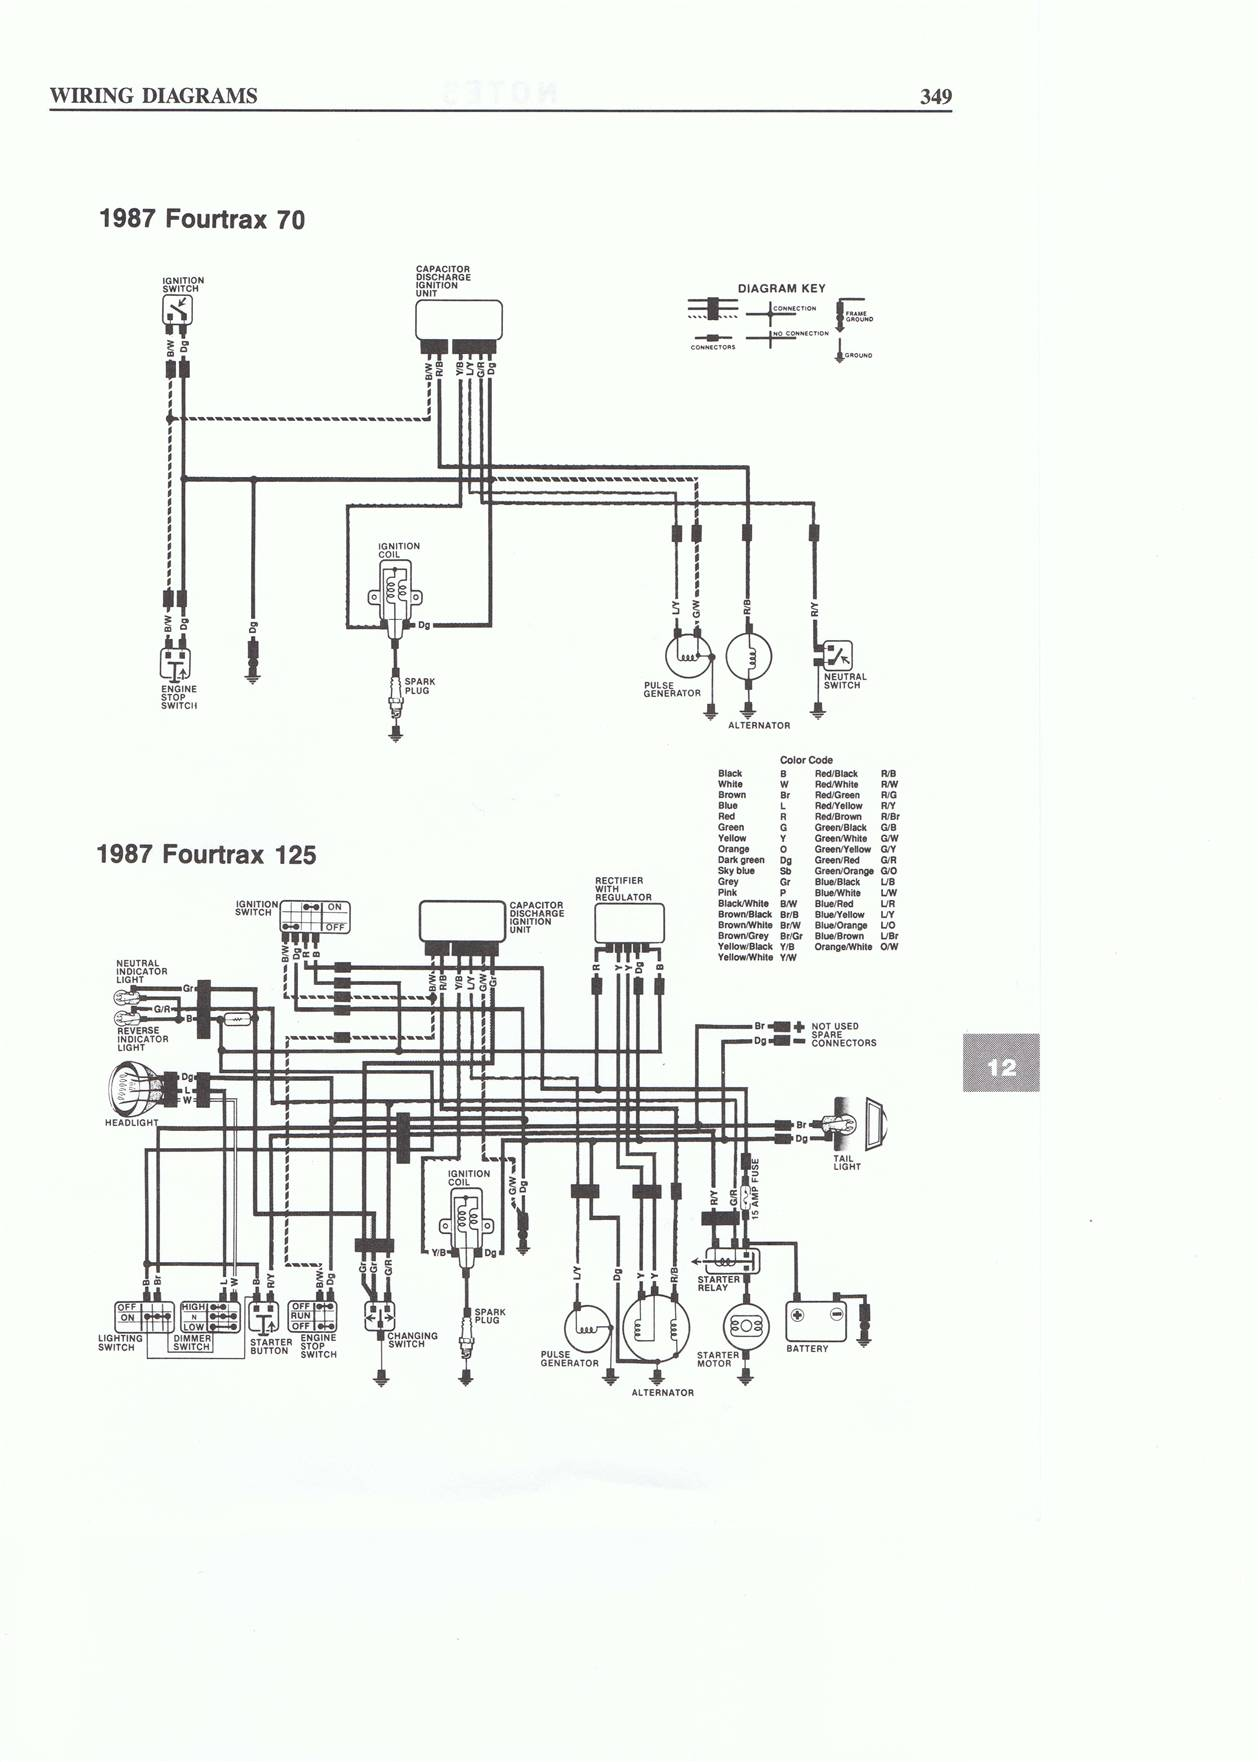 Qt50 Engine Diagram Wiring Master Blogs Yamaha Qt 50 Gy6 1982 1978